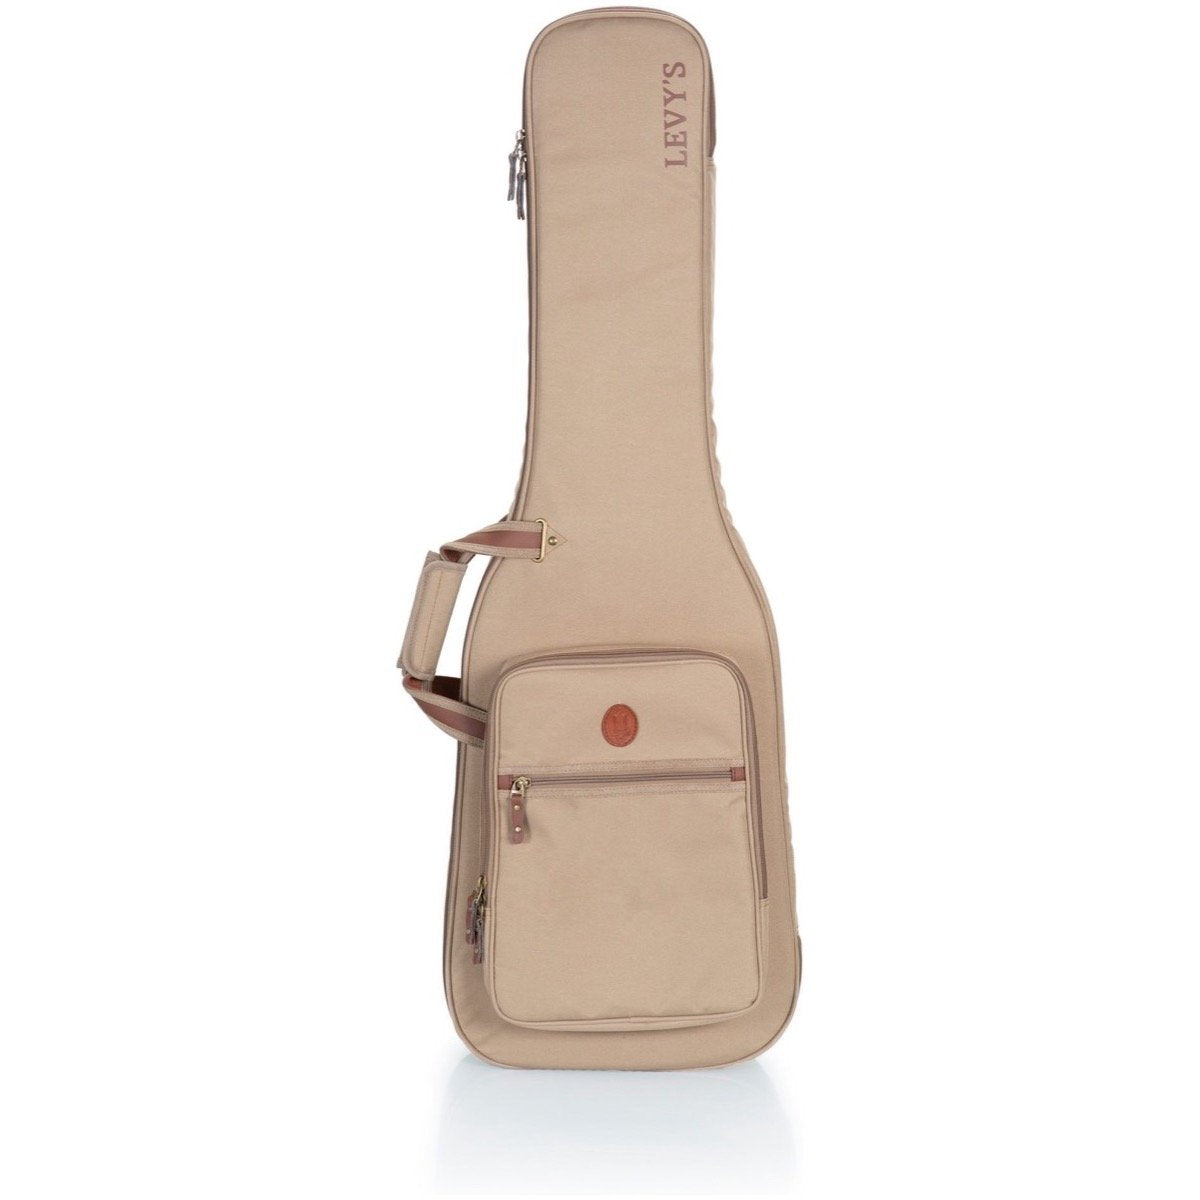 Levy's 200-Series Deluxe Electric Guitar Gig Bag